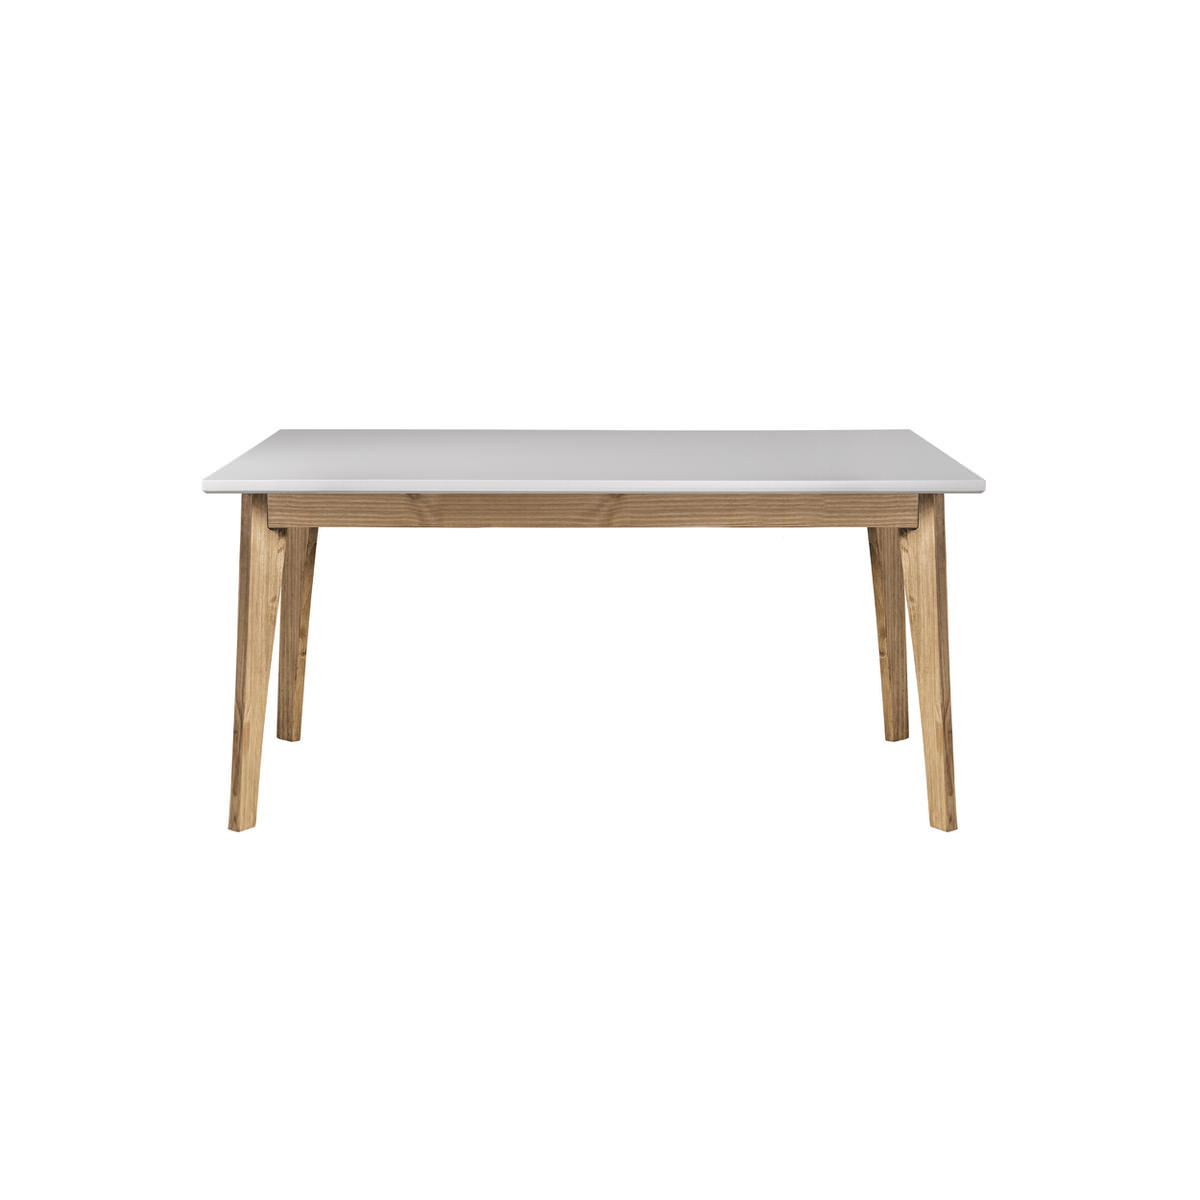 Rustic Mid Century Modern 6 Seating Dining Tables In White And Natural Wood Within Newest Rustic Mid Century Modern Jackie 6 Seating White & Natural Wood Dining Tablemanhattan Comfort (View 2 of 30)